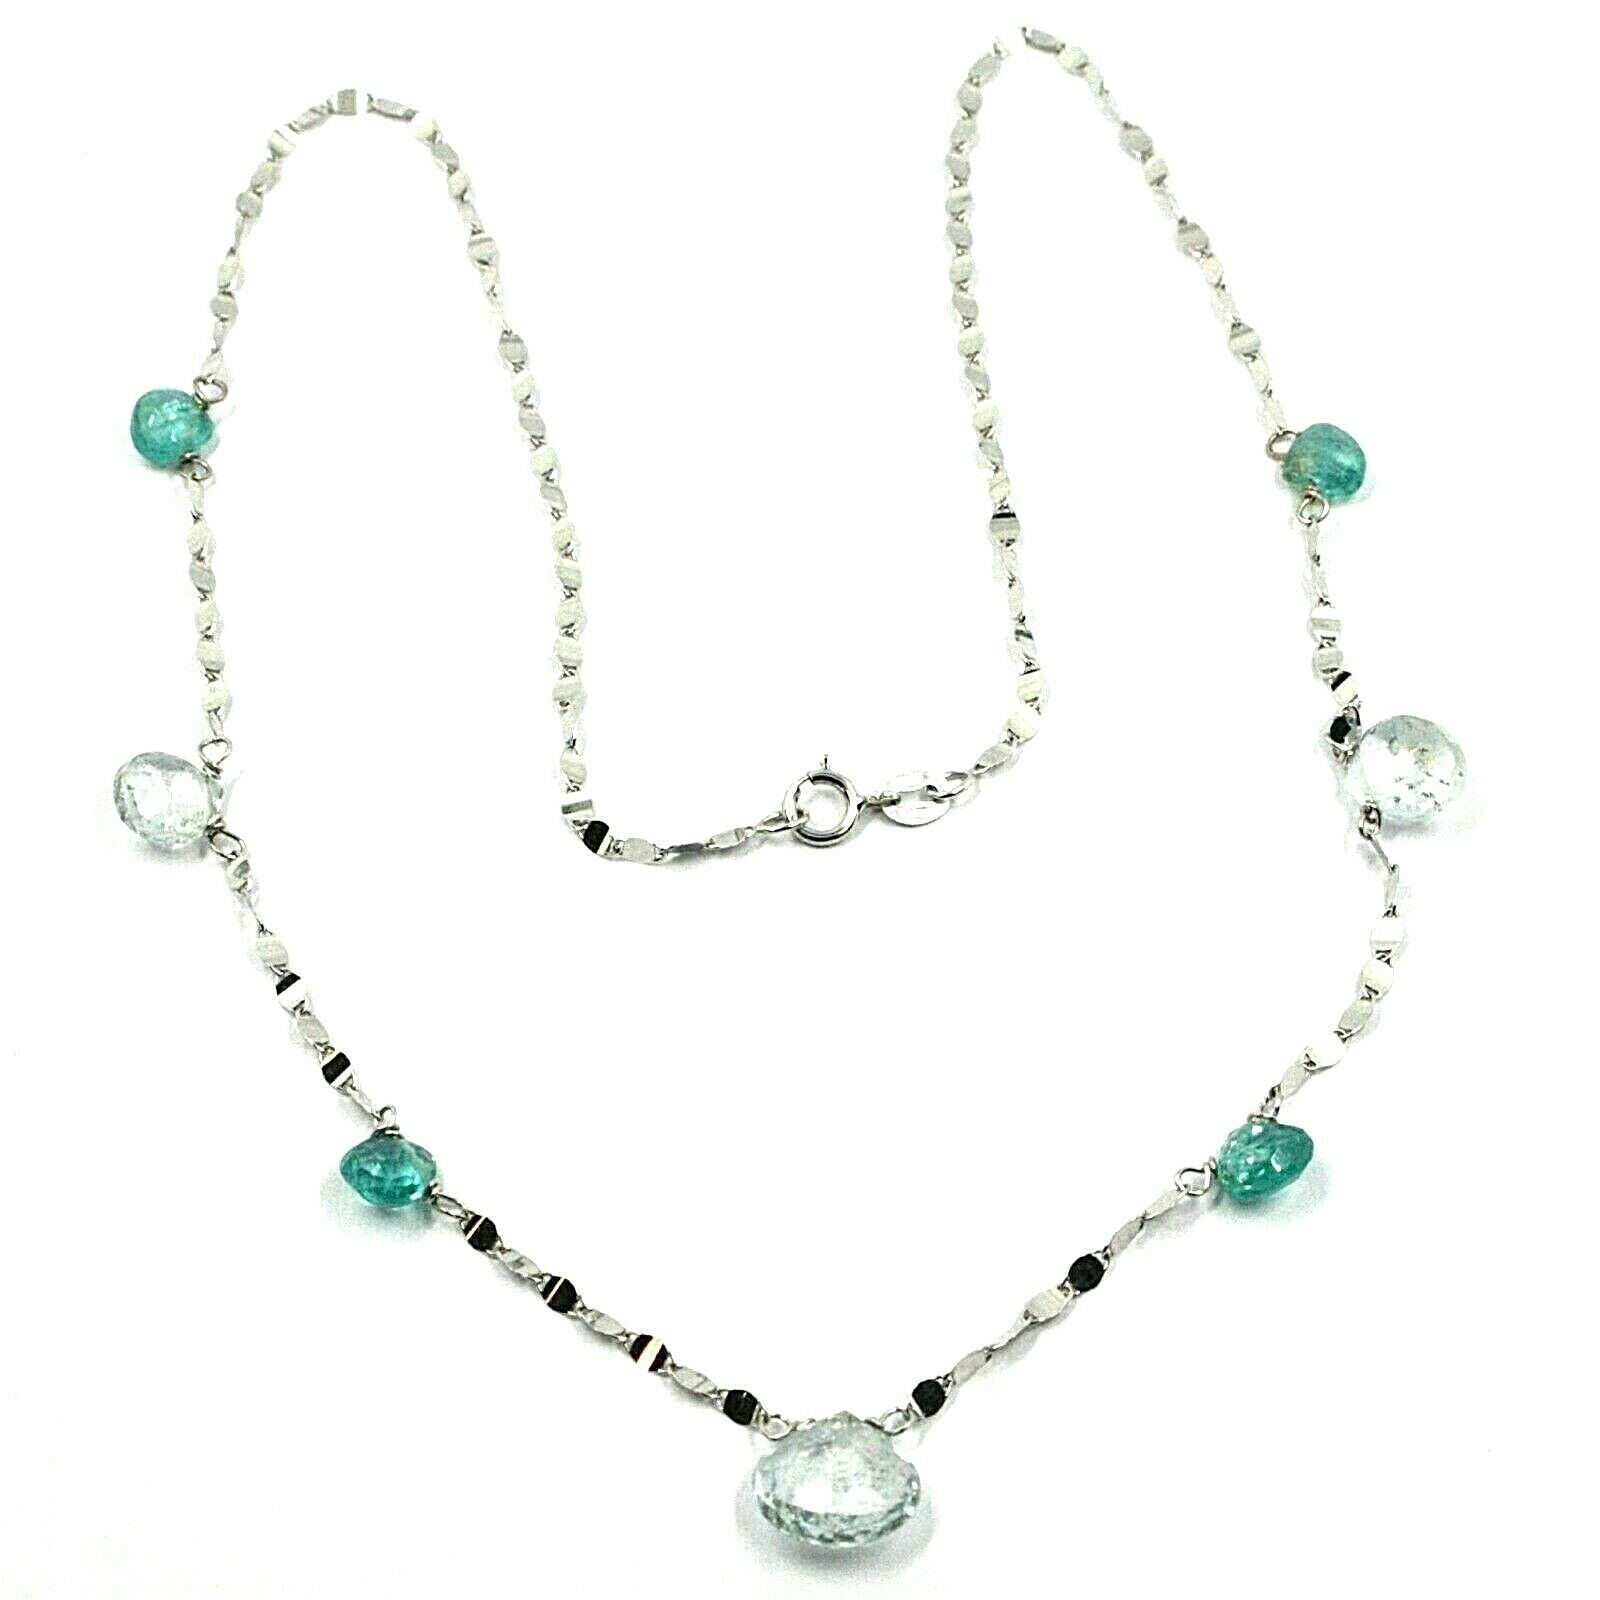 18K WHITE GOLD NECKLACE DROP FACETED GREEN & BLUE ALTERNATE AQUAMARINE, CHAIN